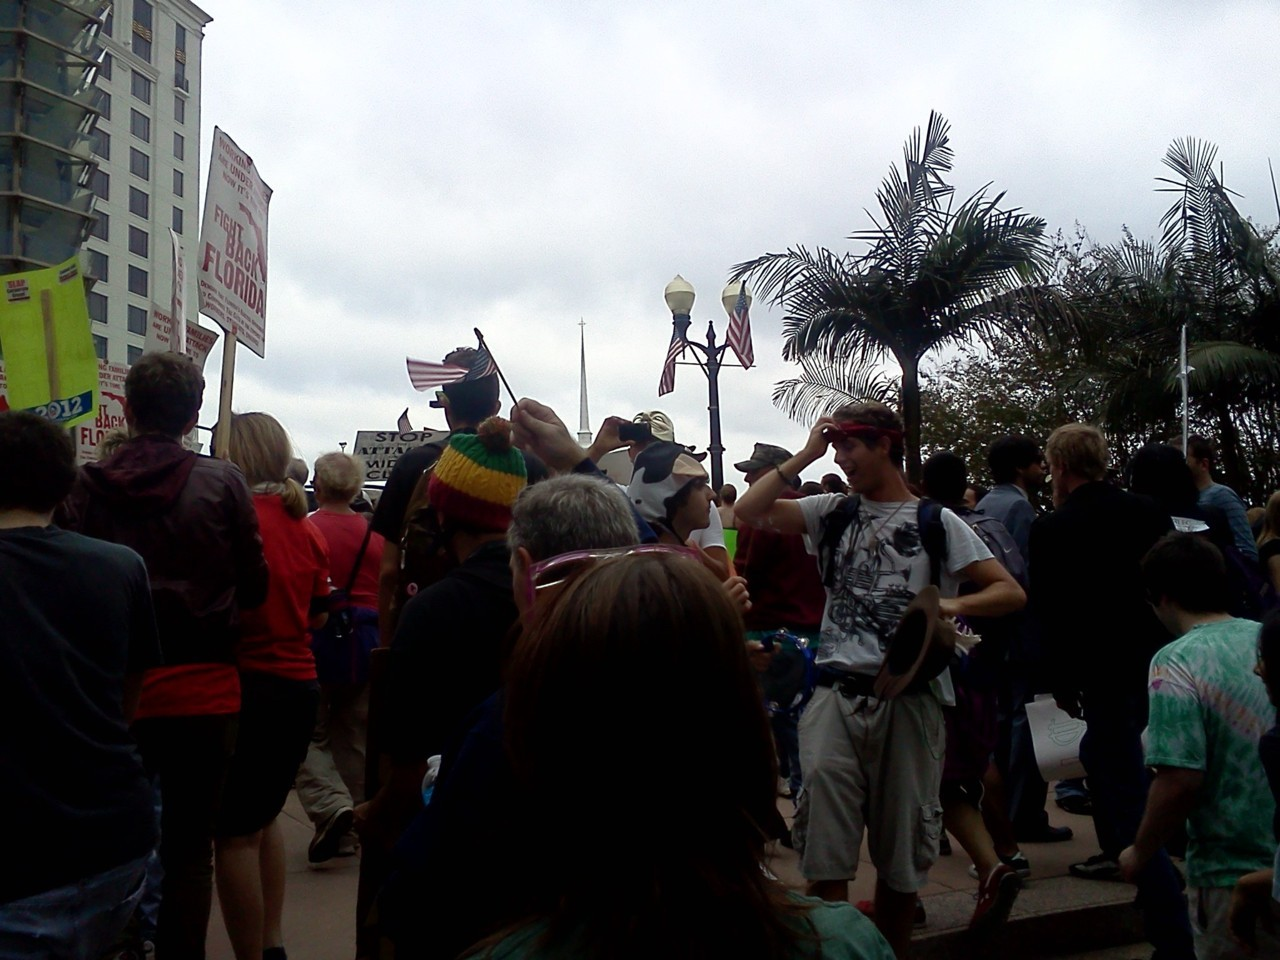 Occupy Orlando Finally got a chance to take part in an Occupy march this morning! I have been to Occupy Orlando a few times over the last couple weeks, including almost the entire first day and still had managed to miss marching every time until now. So glad that I was able to be a part of this today, very powerful. Great people and good vibes. It is interesting how, while there are certain things that everyone is involved with and the movement agrees on to some extent, the ideas can also be extremely varied. It's refreshing to see that people can bond over their similarities and address their differences with civility. I'm sure there are exceptions, but that is the approach I have seen every time that I have been there. A lot of people criticize the Occupy movement because of a lack of focus. Sometimes, I agree with this, but I have to say that my opinion changes like the weather. However, I always will disagree with those that say there is NO POINT to all of the demonstrations, because to me it is important just to bring attention to the fact that there are very big problems around the world. It is important to demonstrate that we aren't apathetic. Between the late hour and the little sleep I had the night before I know this wasn't exactly concise, but I really felt the need to write or ramble something before I turned in for the the night.